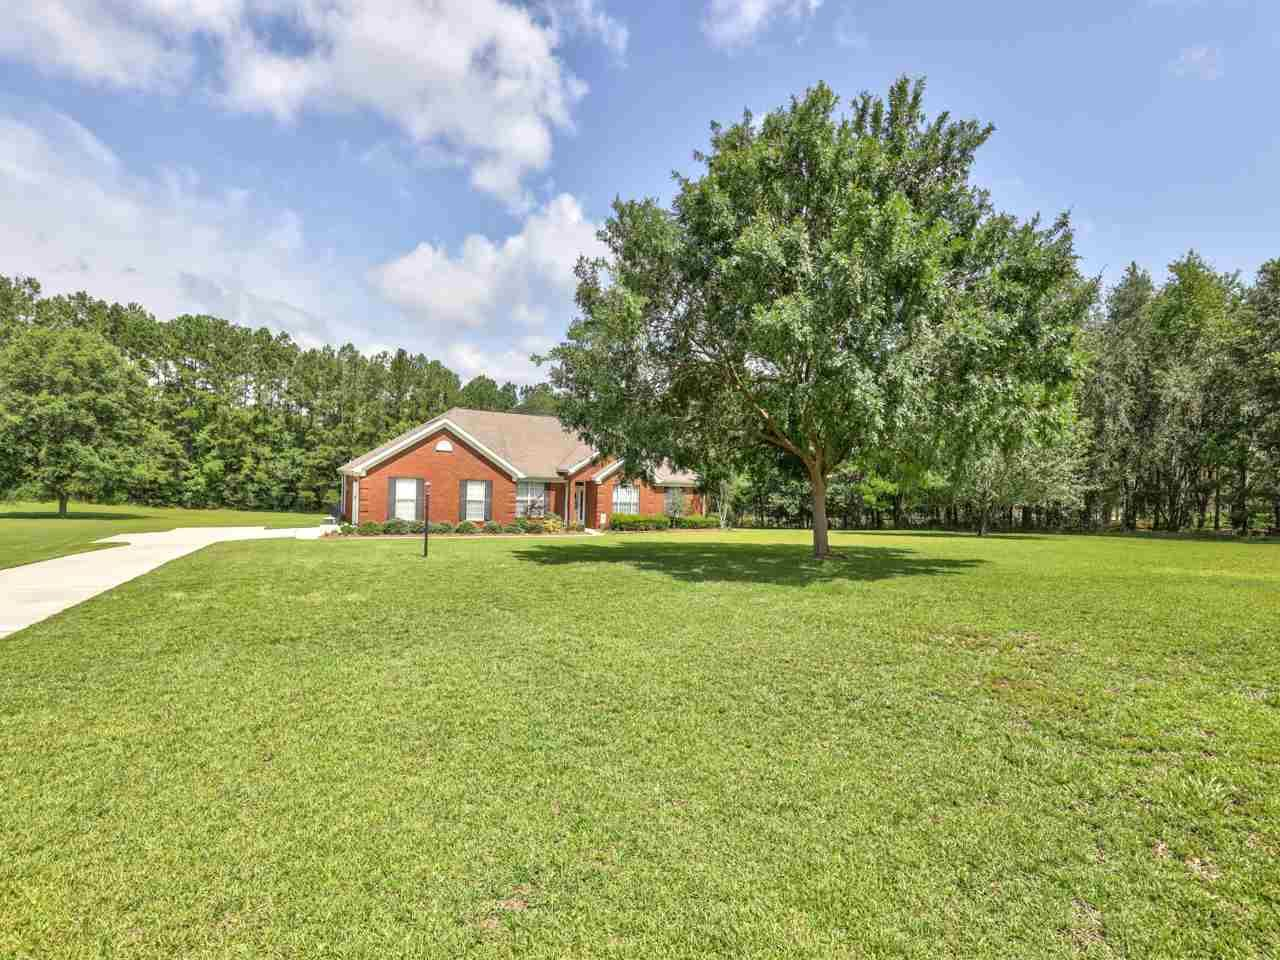 Photo of 3056 Hawks Landing Dr, TALLAHASSEE, FL 32309 (MLS # 320827)